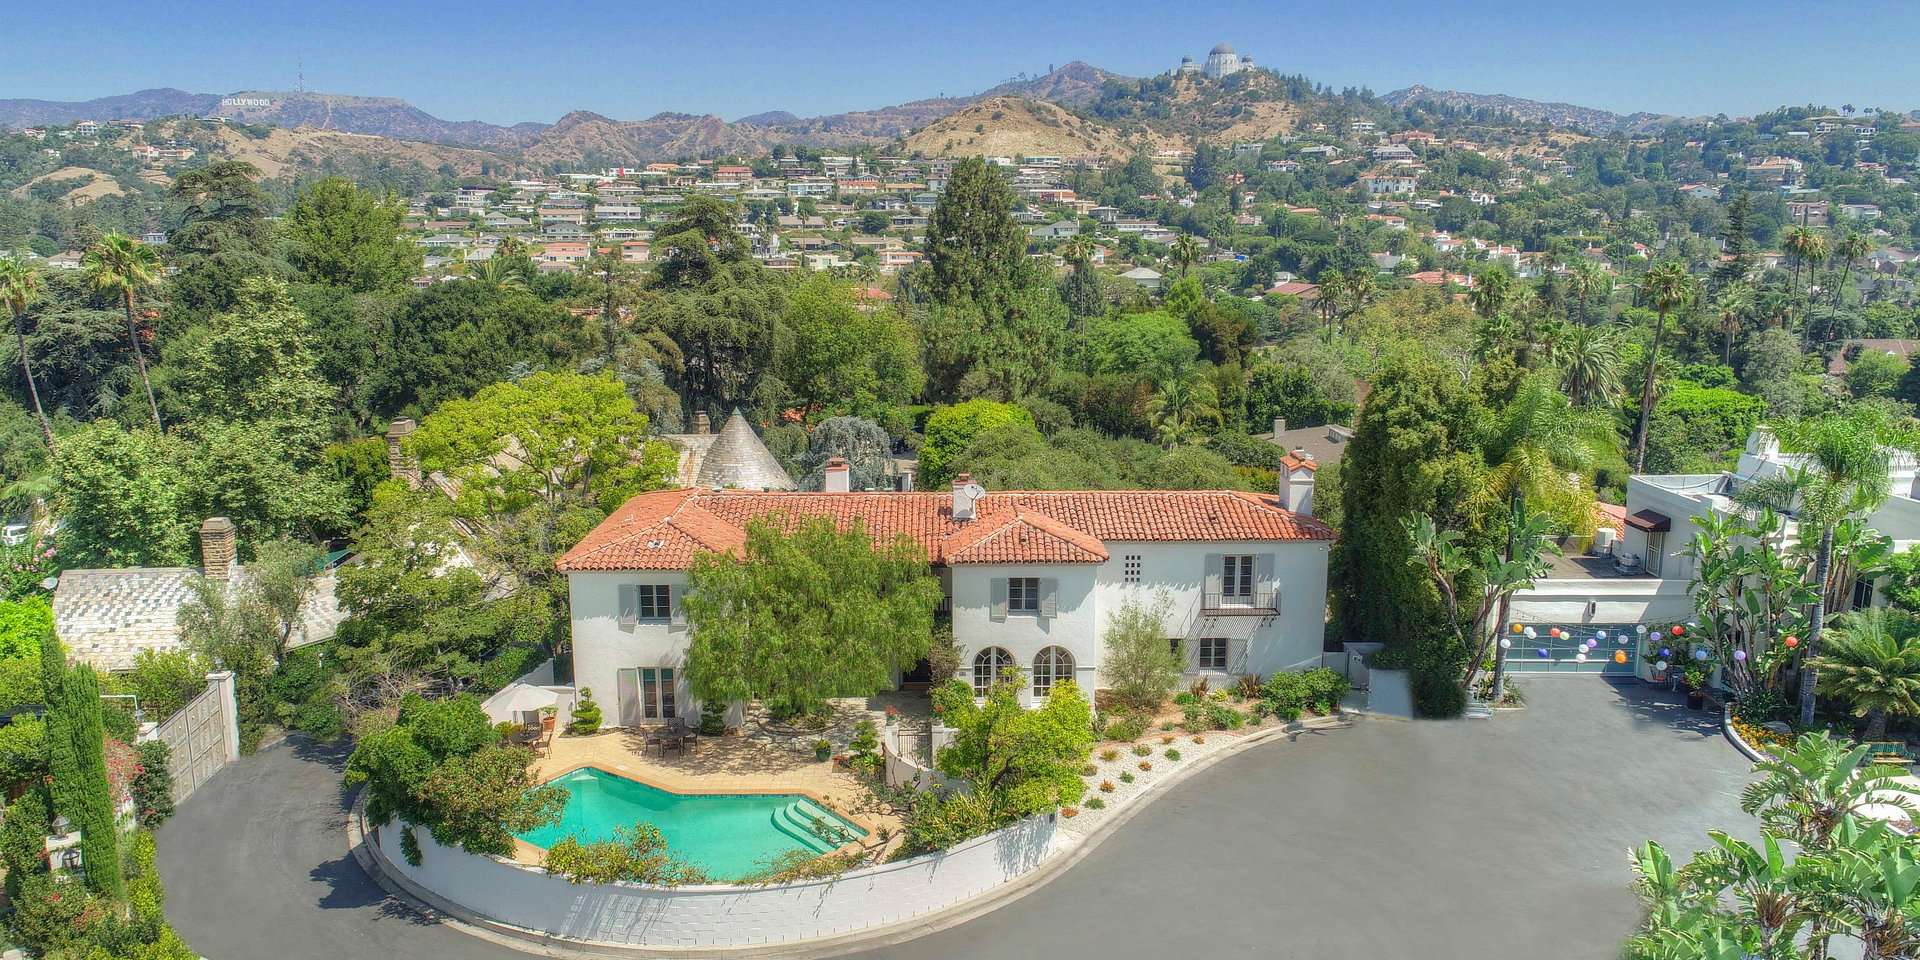 Coldwell Banker Residential Brokerage Lists Los Angeles Property Designed by Playboy Mansion Architect for $7 Million